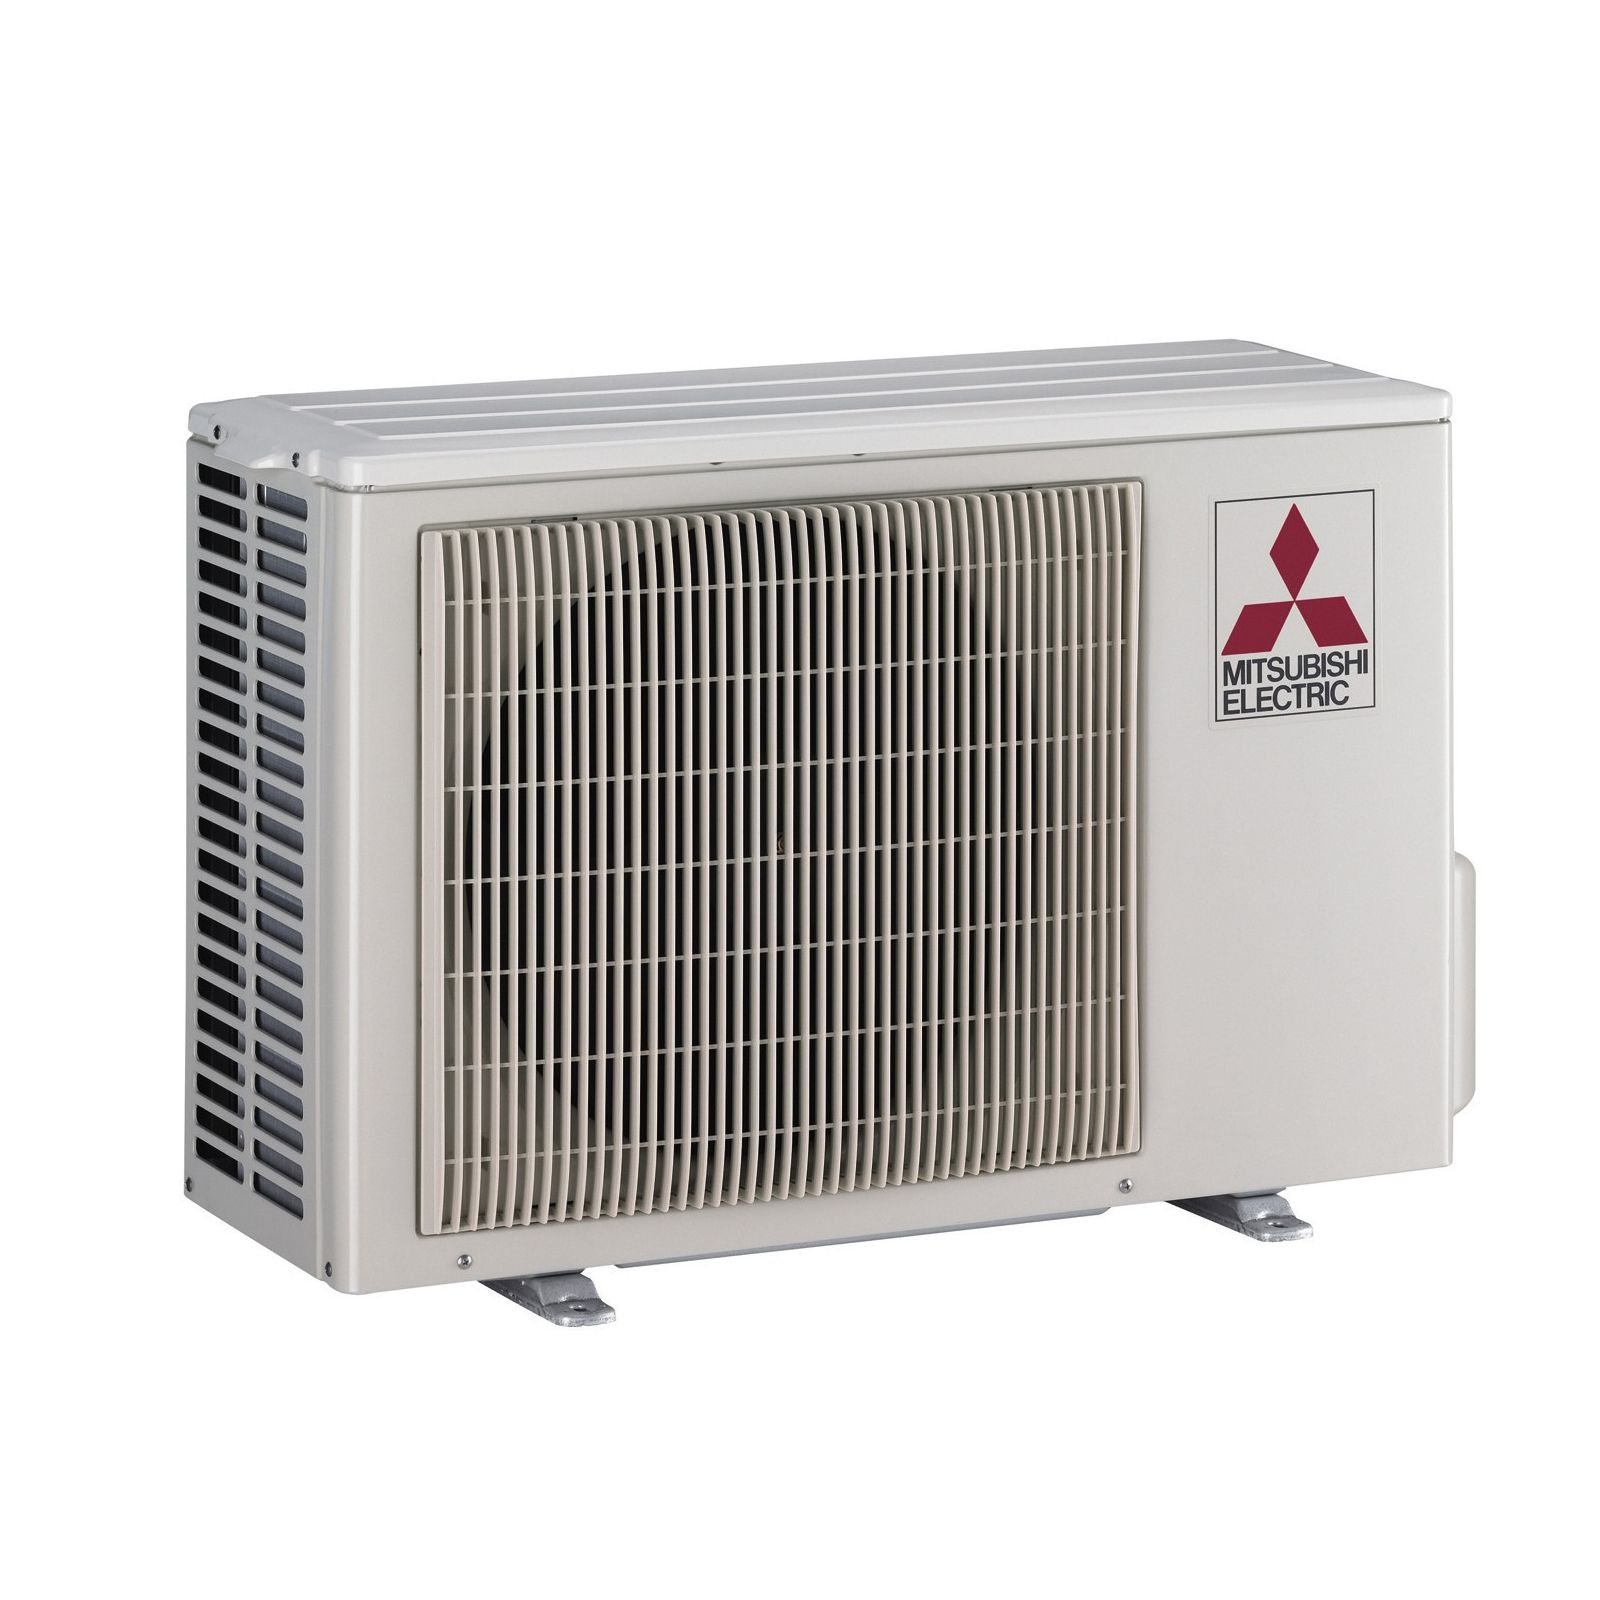 2. Mitsubishi Electric сплит-система настенный MS-GF50 VA/MU-GF50VA (серия Classic)